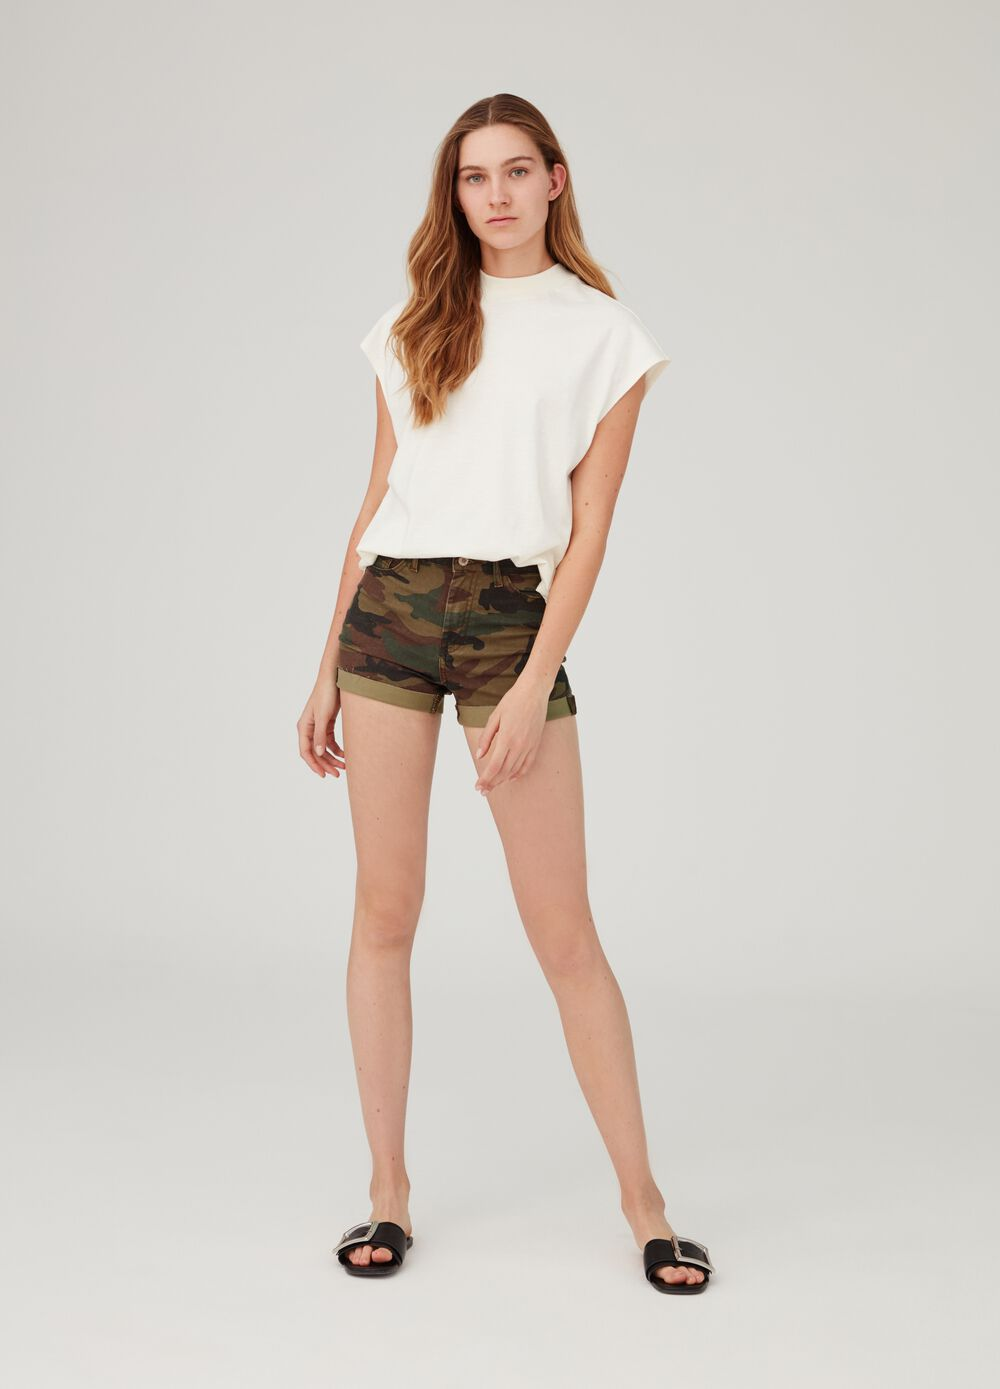 Stretch denim shorts with camouflage pattern